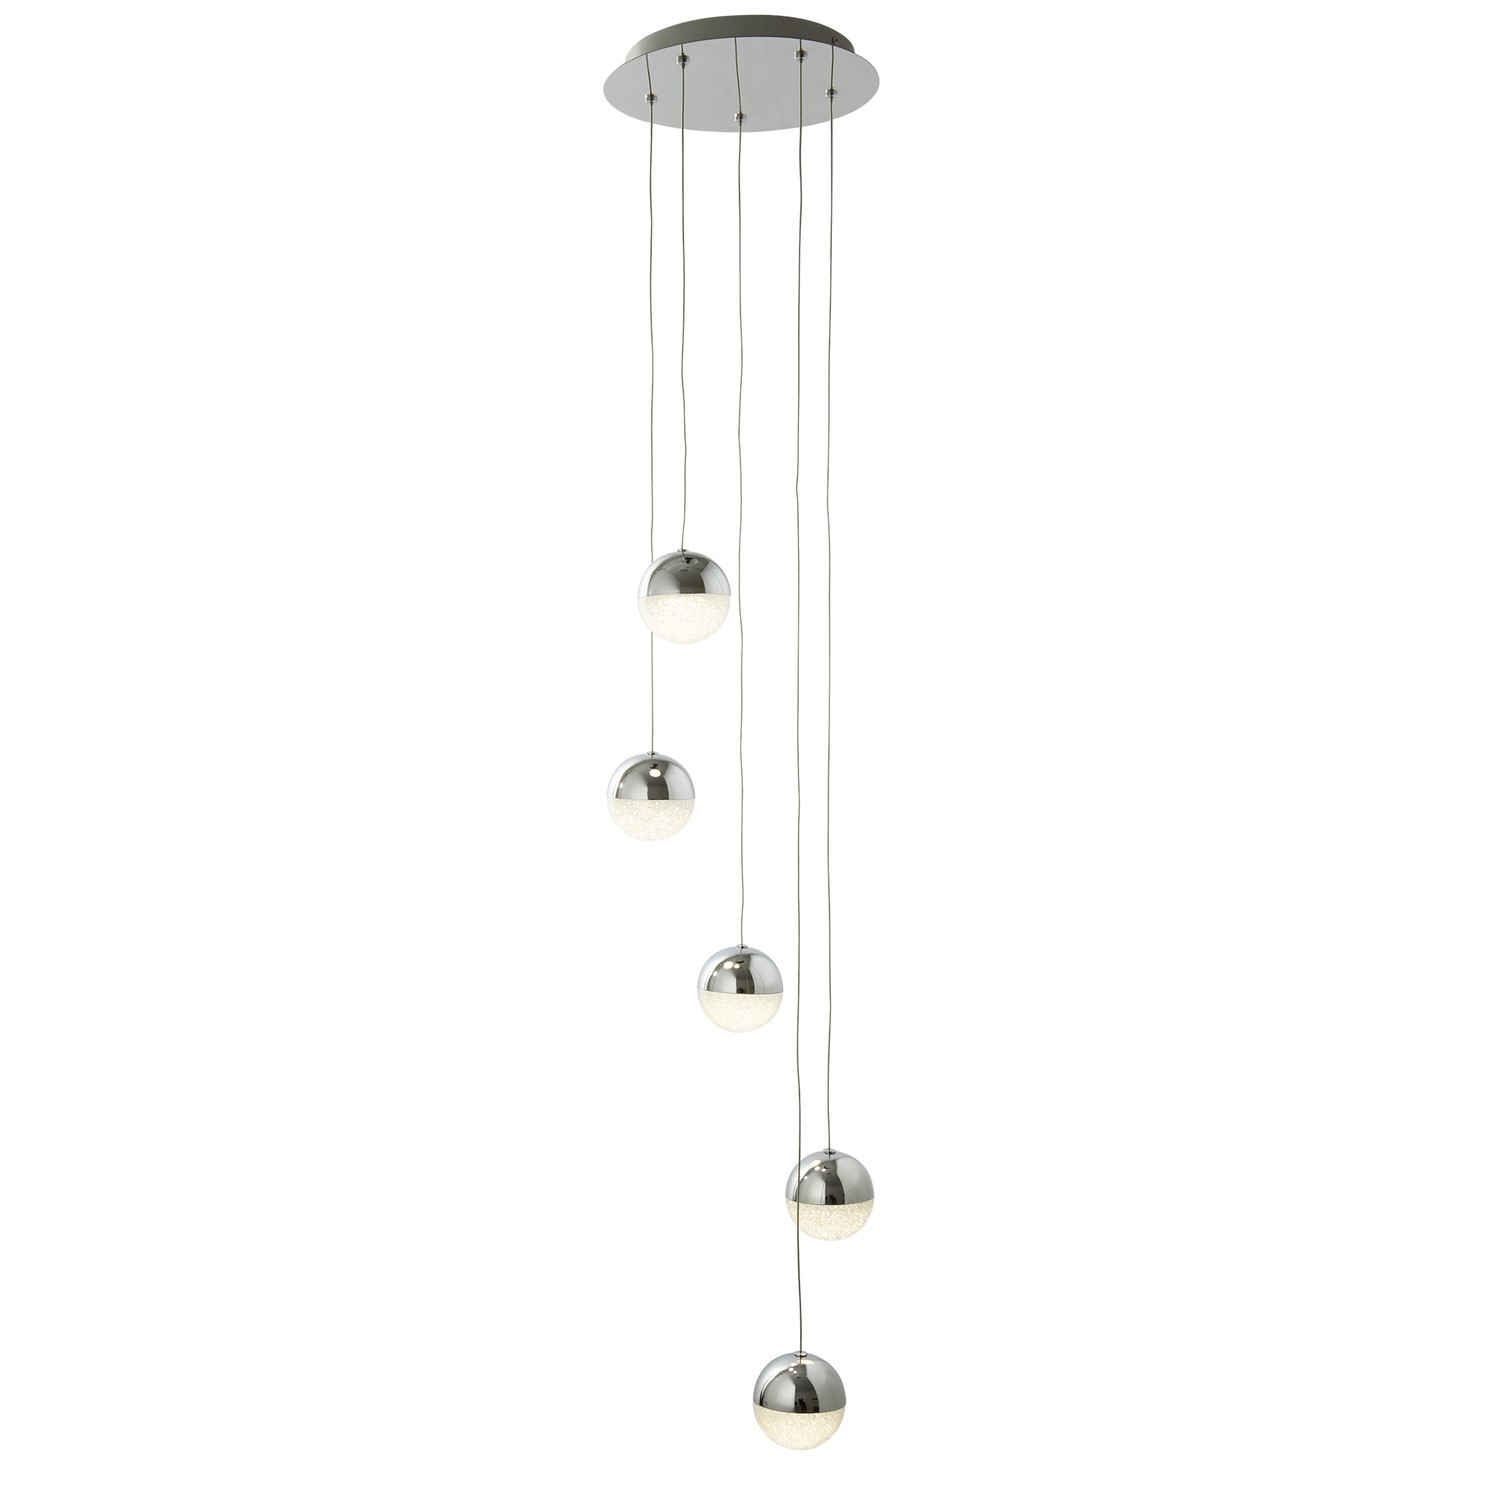 5 Hanging Pendant Lights in Chrome  Marbles